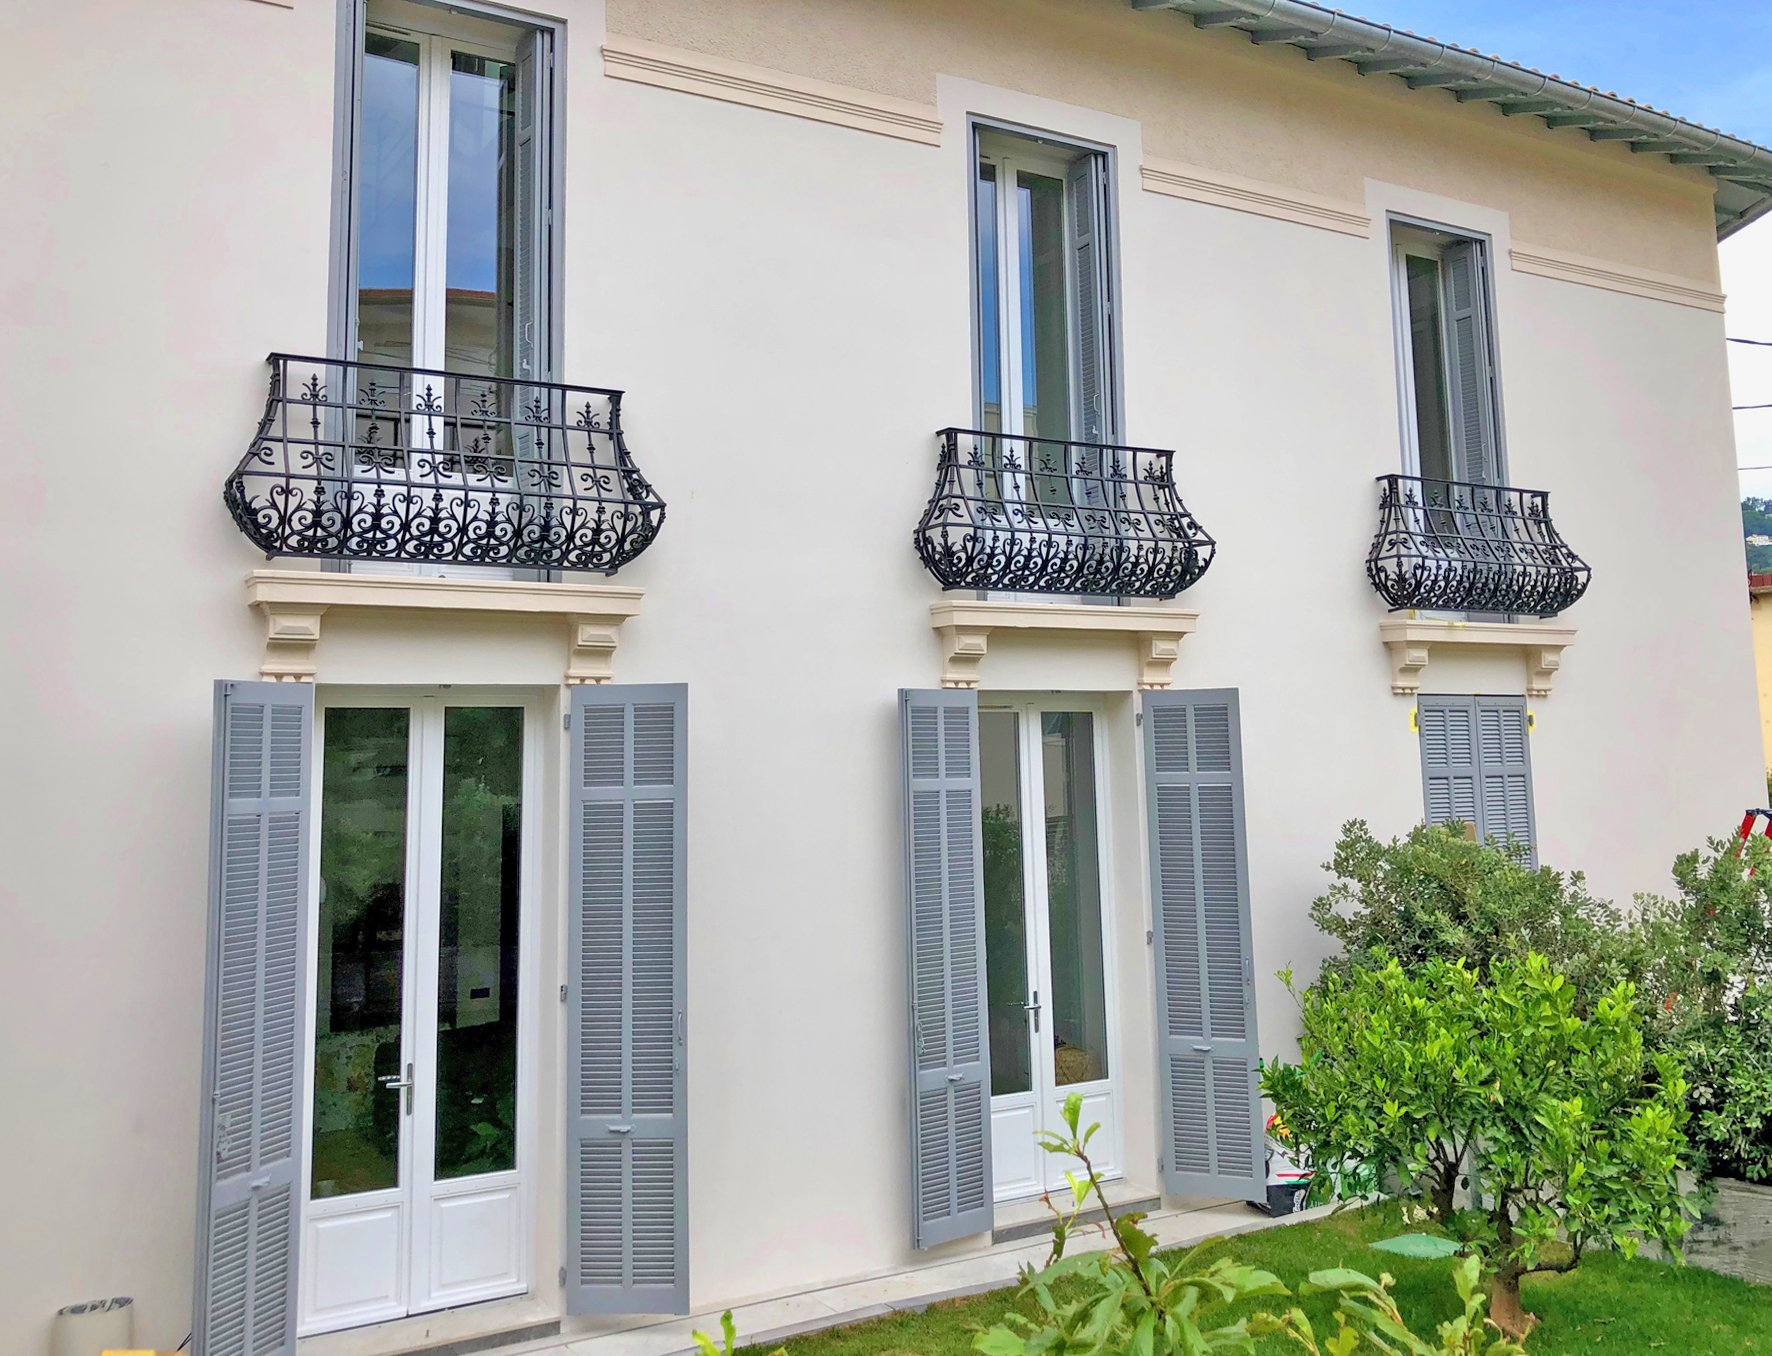 Ideally located walking distance from the Rue d'Antibes